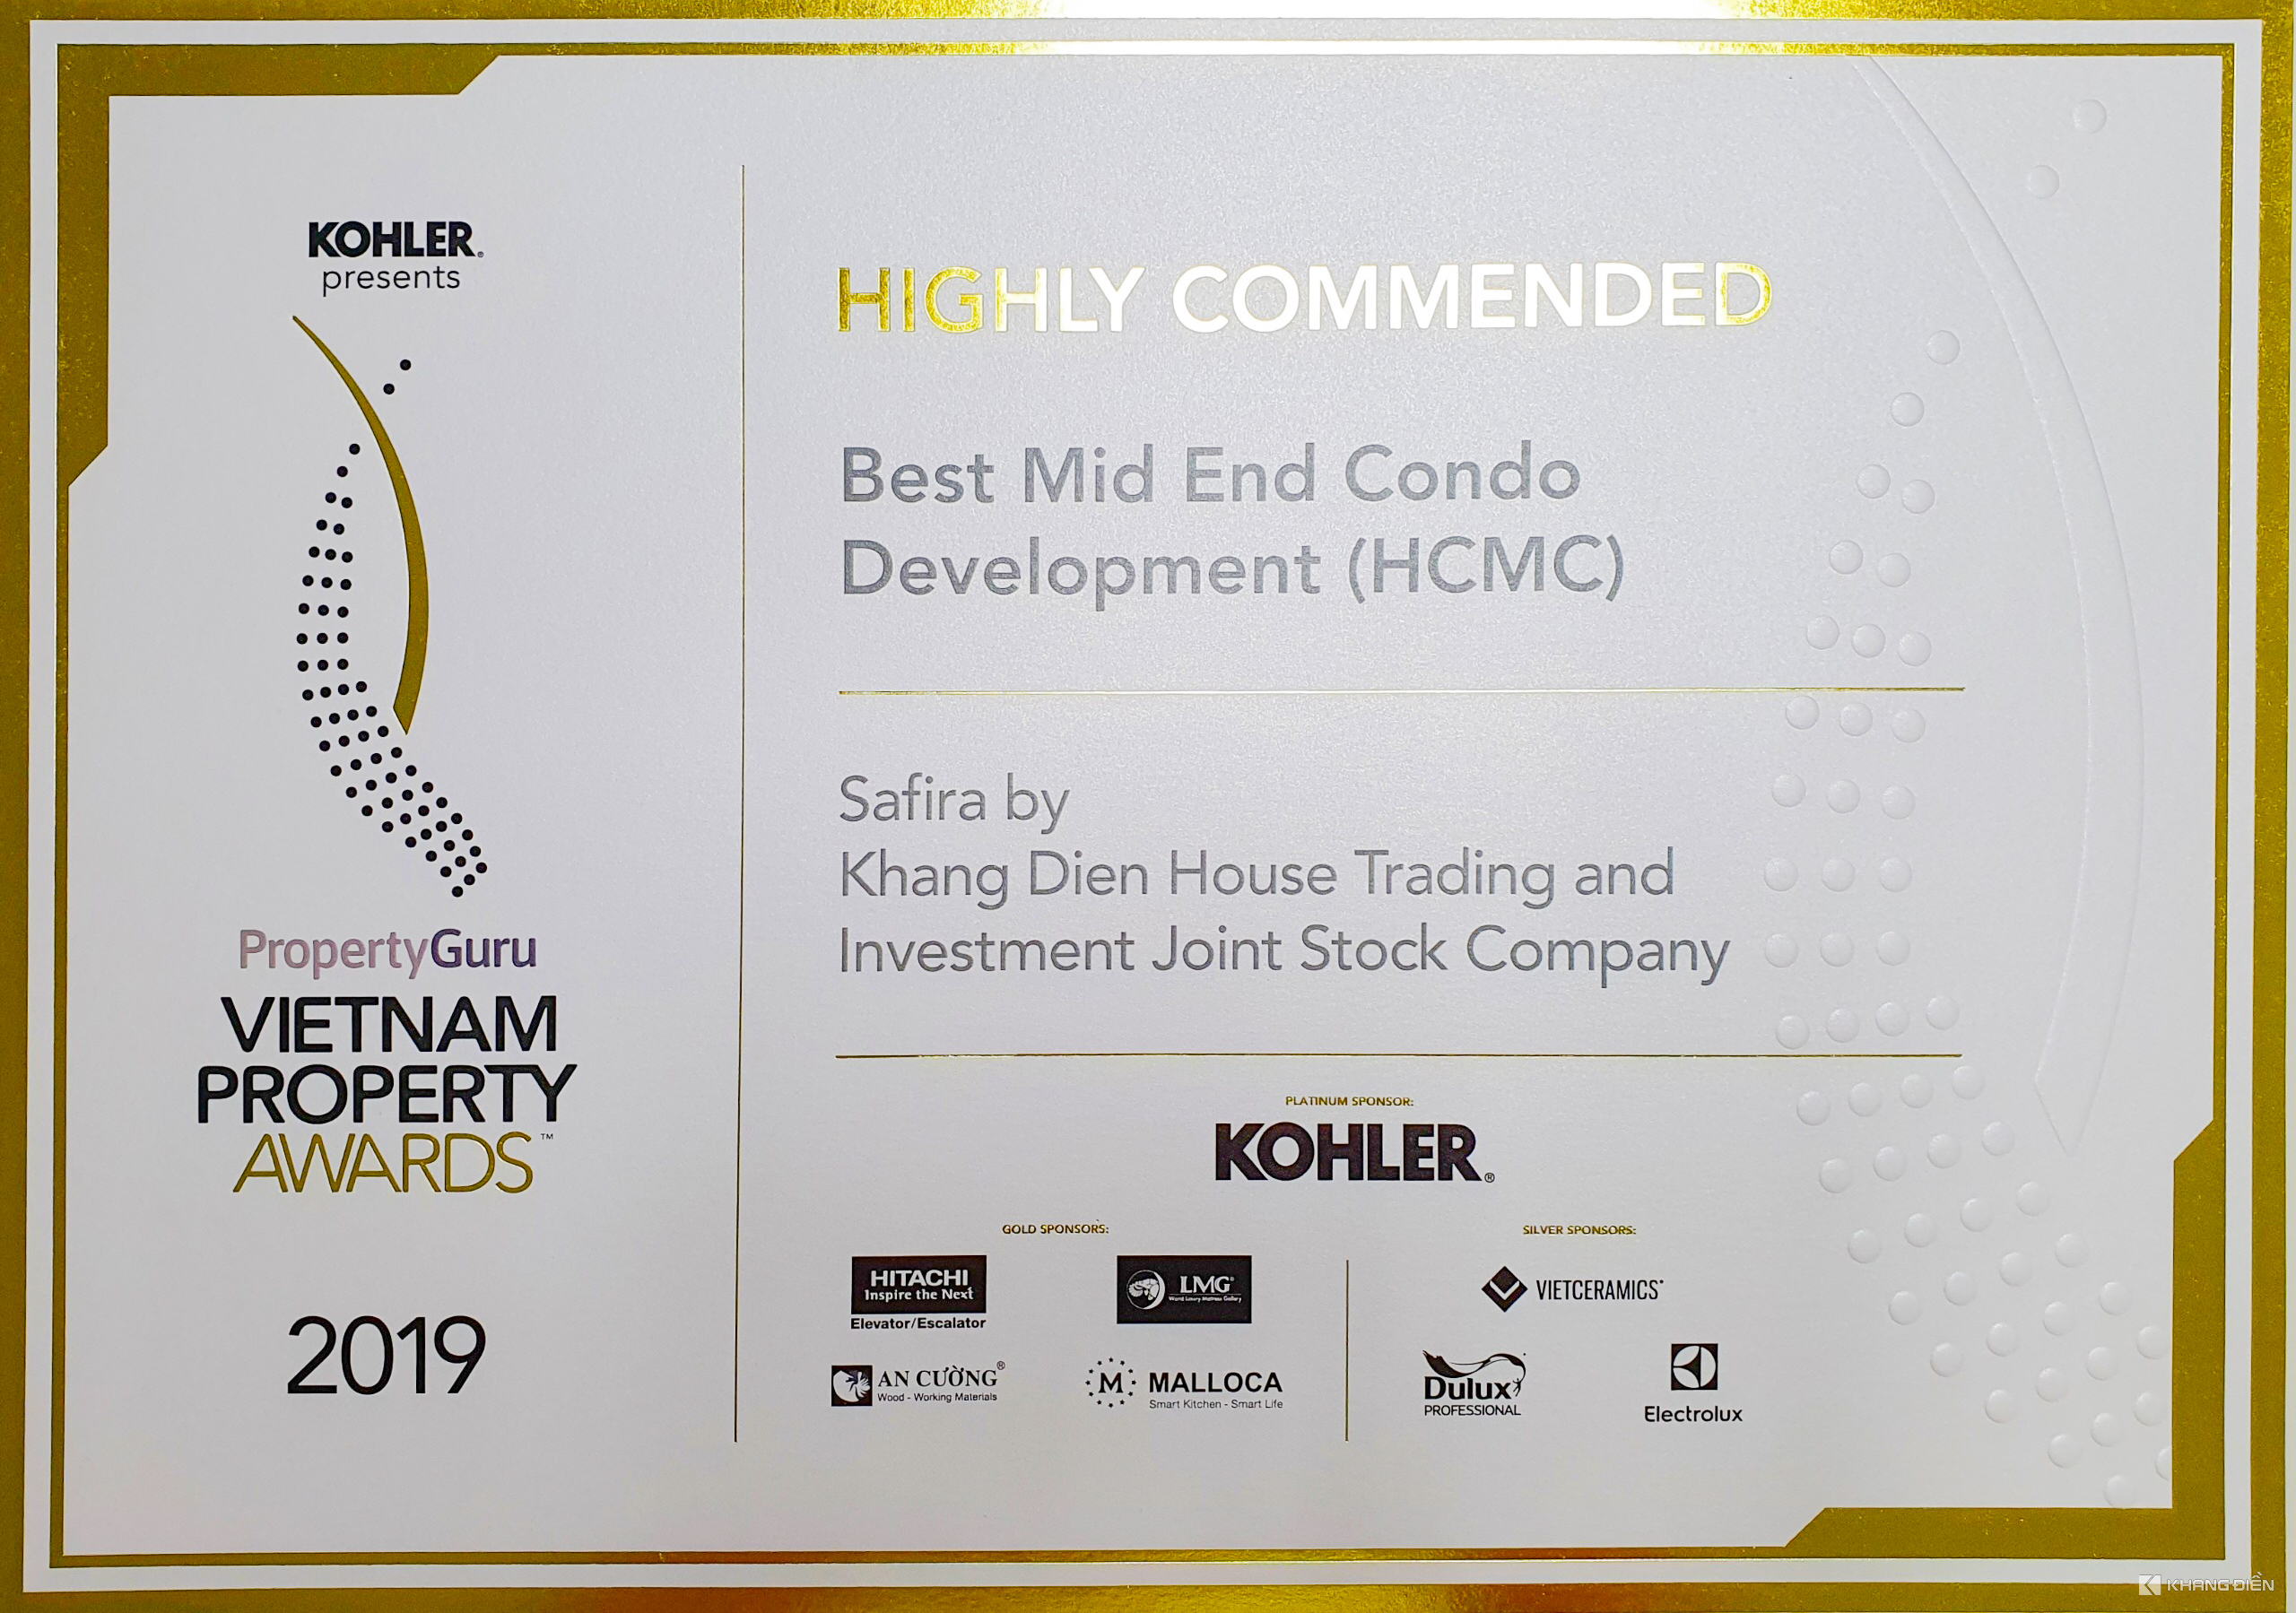 BEST MID END CONDO DEVELOPMENT (HCMC) - VIETNAM PROPERTY AWARDS 2019